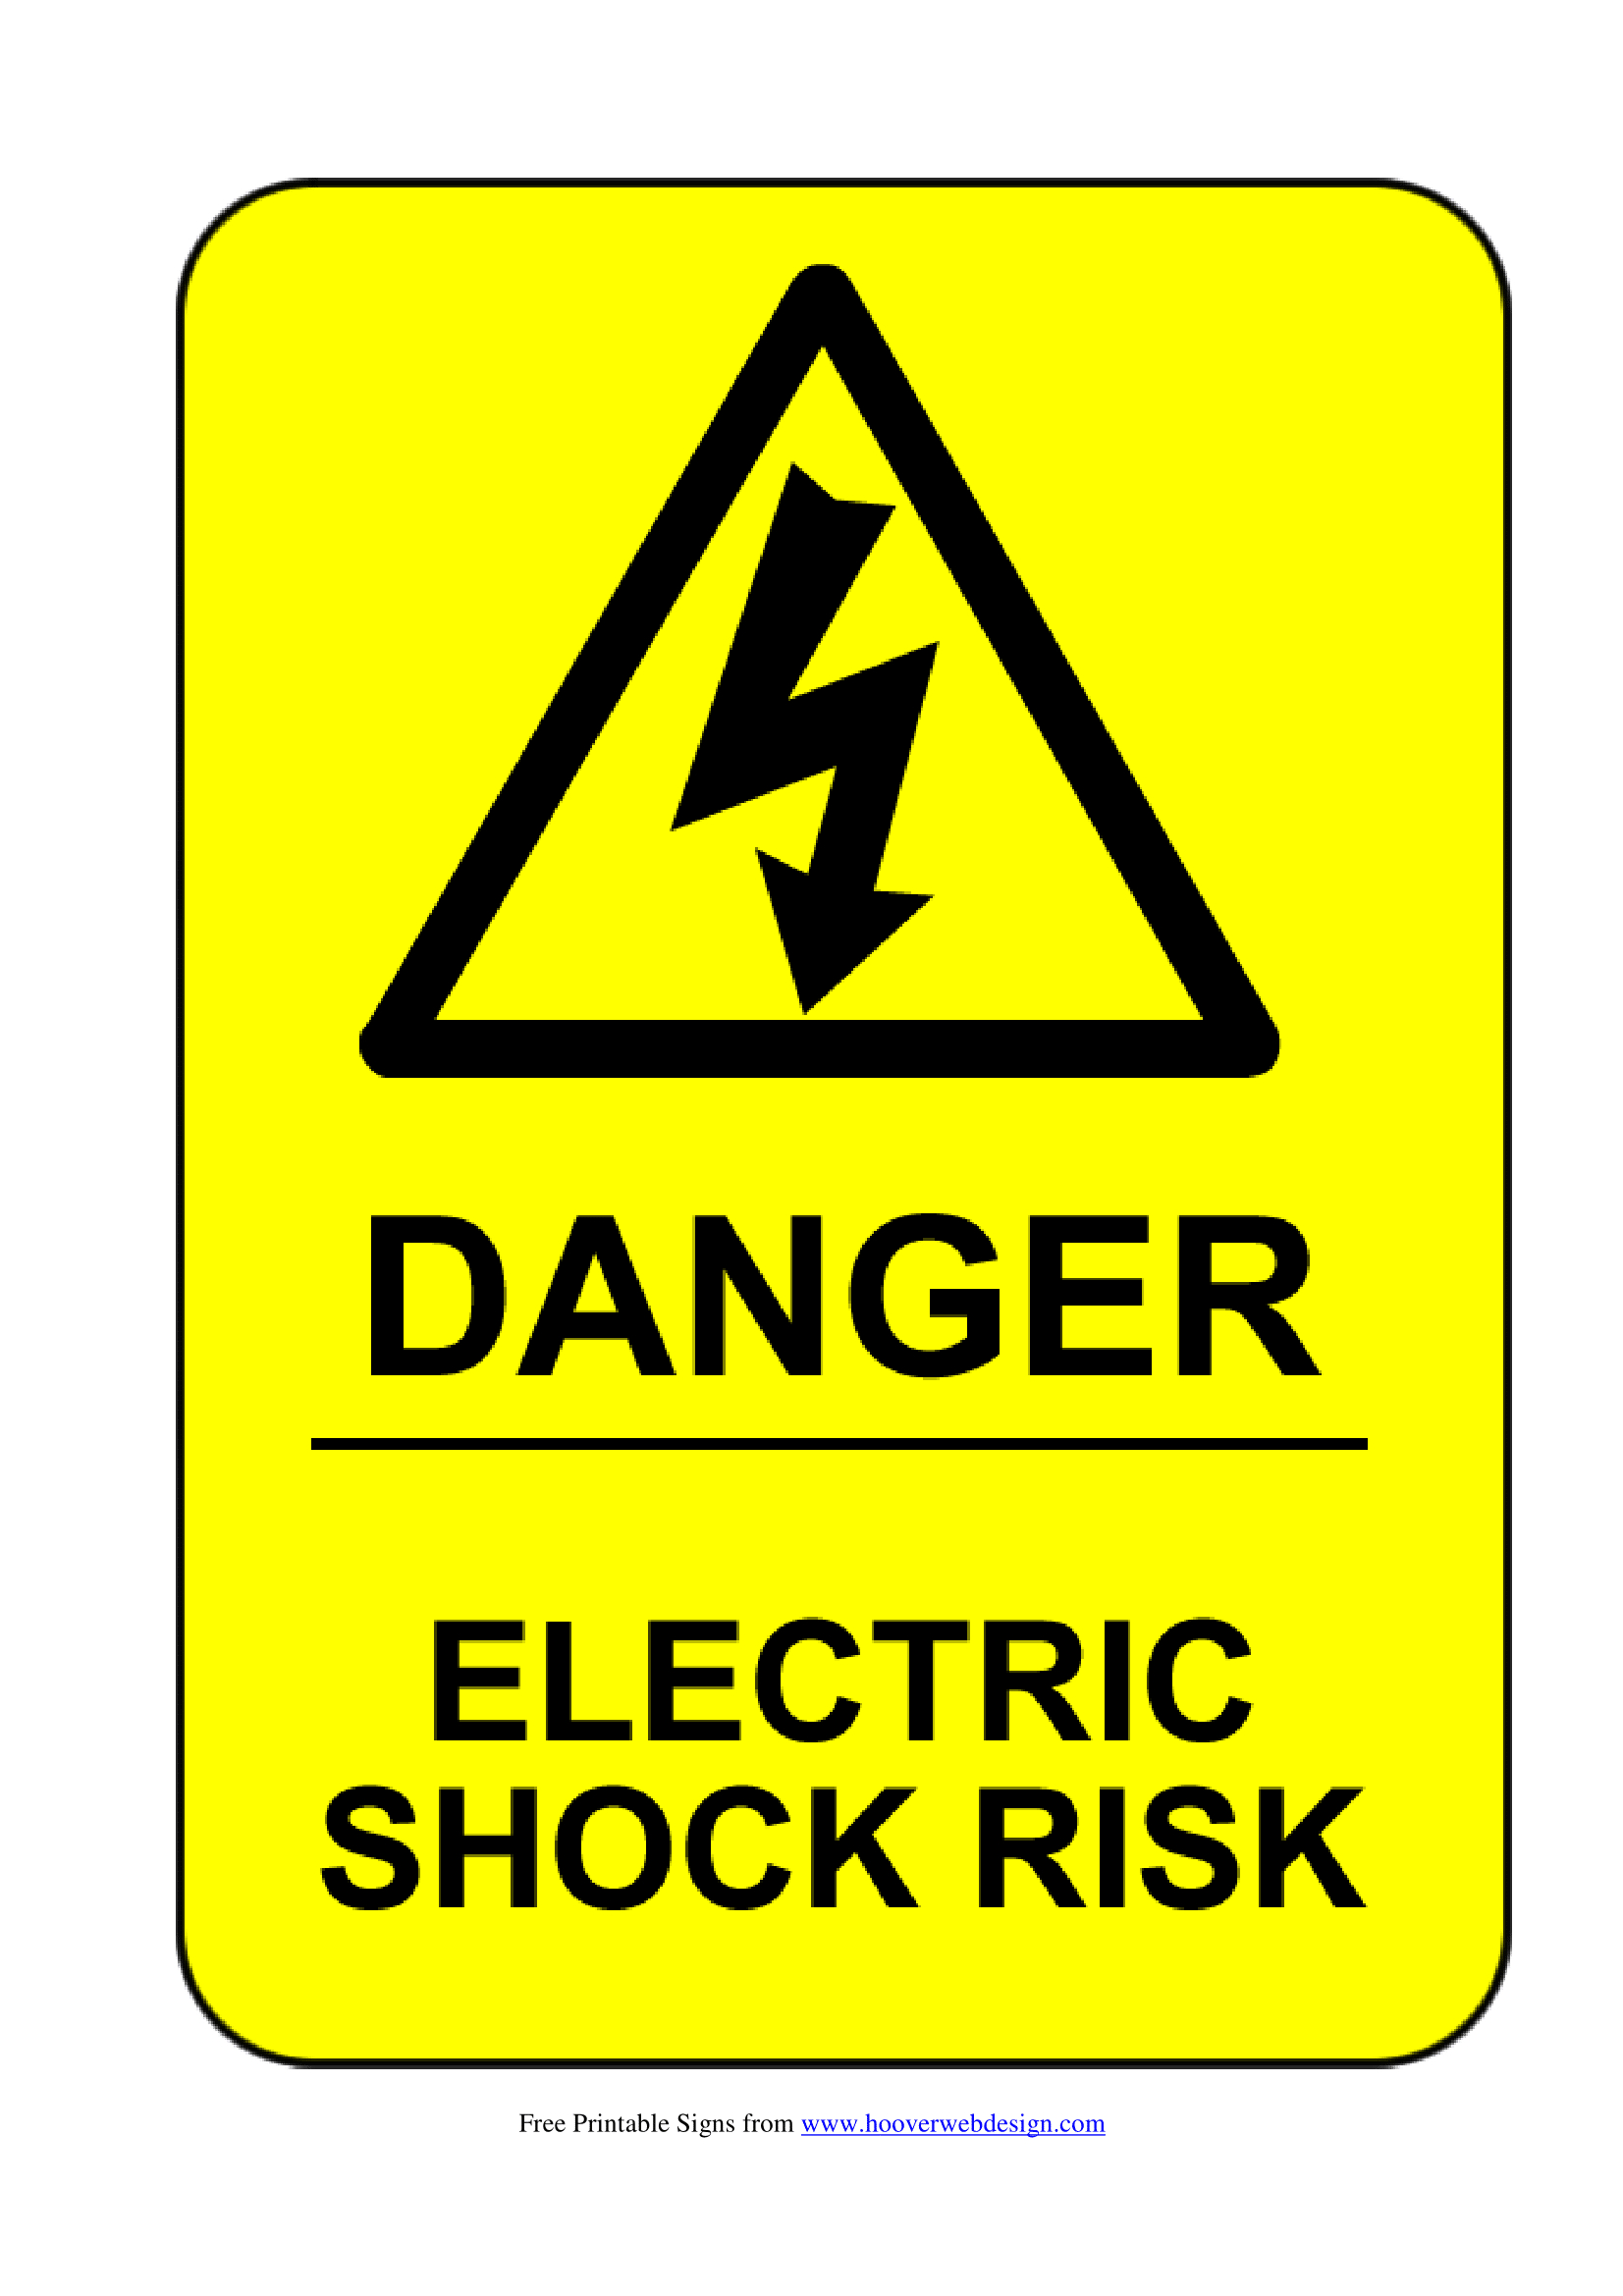 Electrical Safety Signs | Poster Template - Free Printable Health And Safety Signs